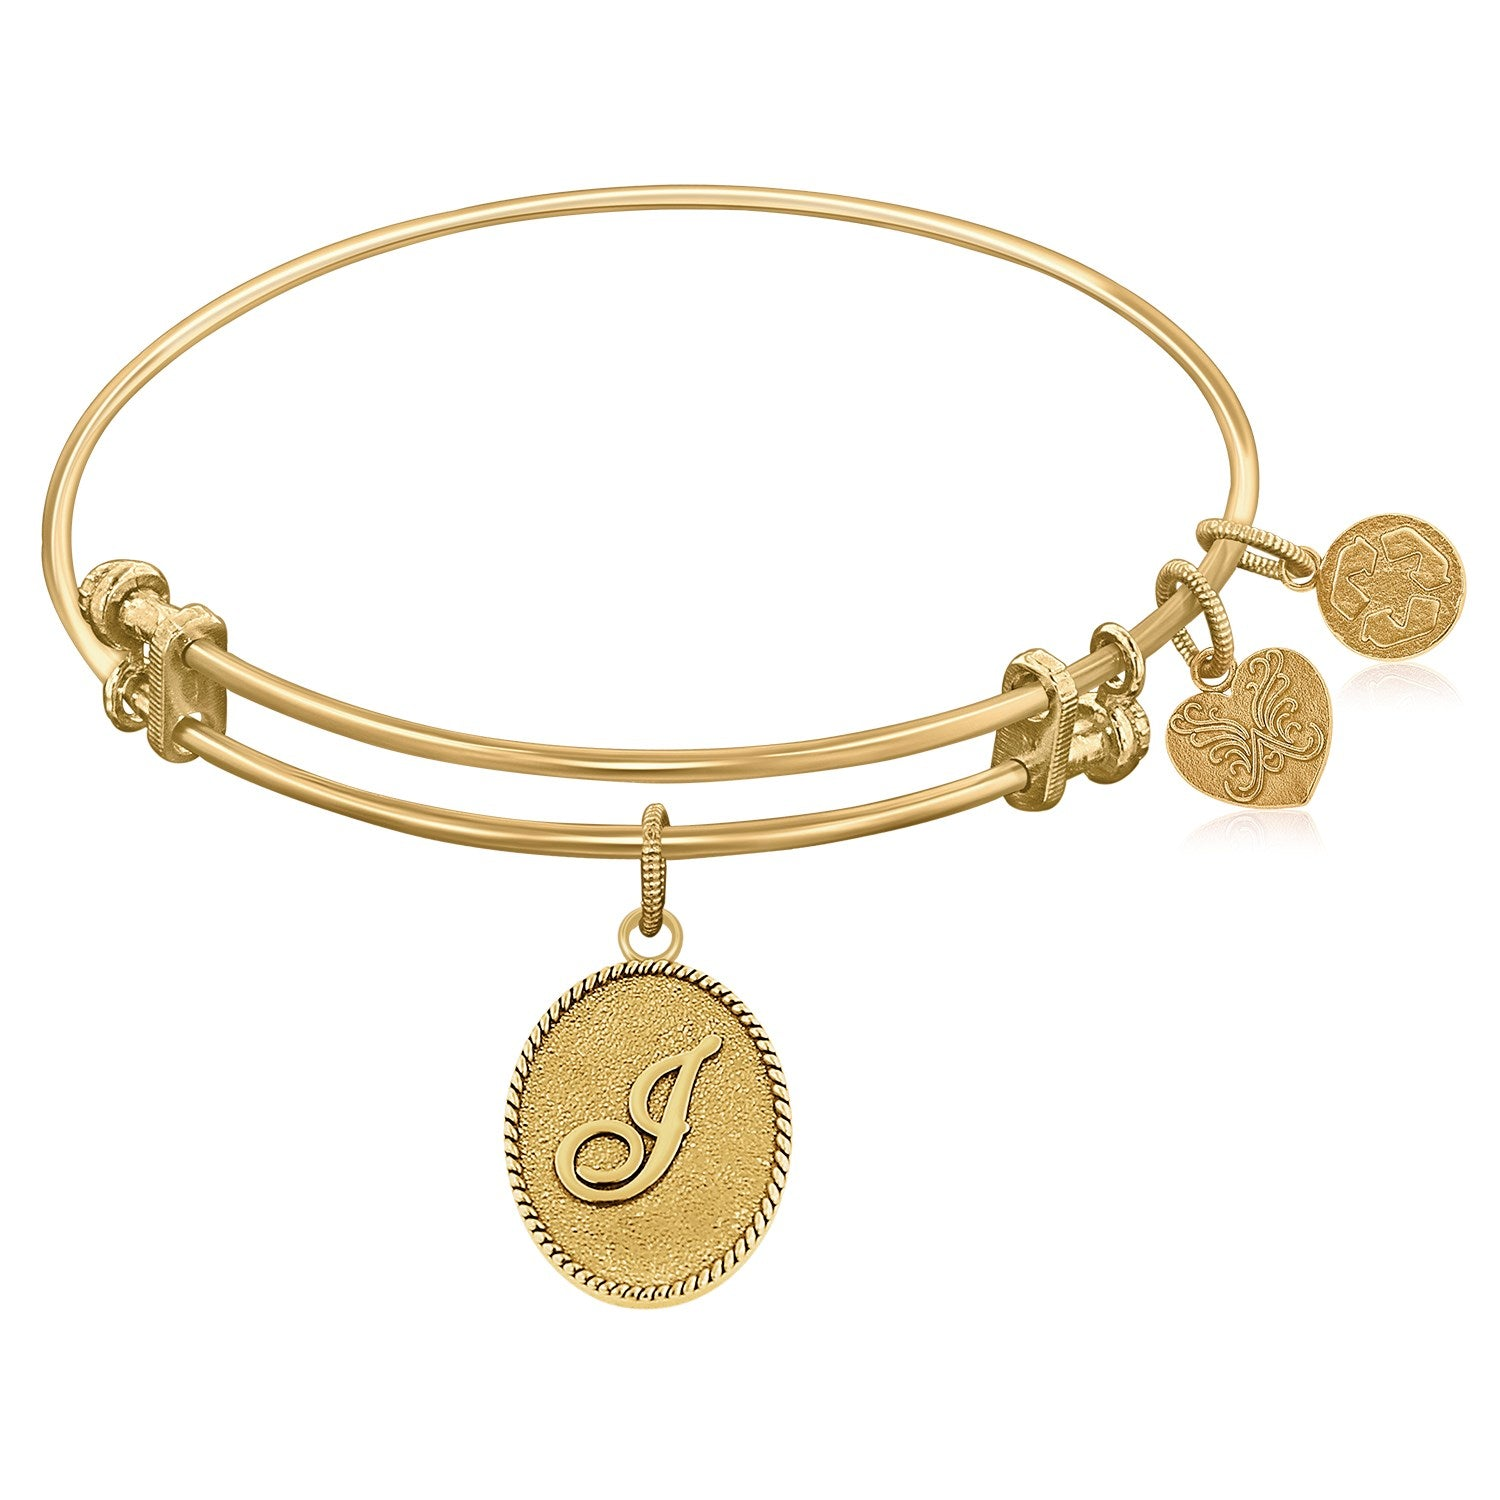 Expandable Bangle in Yellow Tone Brass with Initial J Symbol